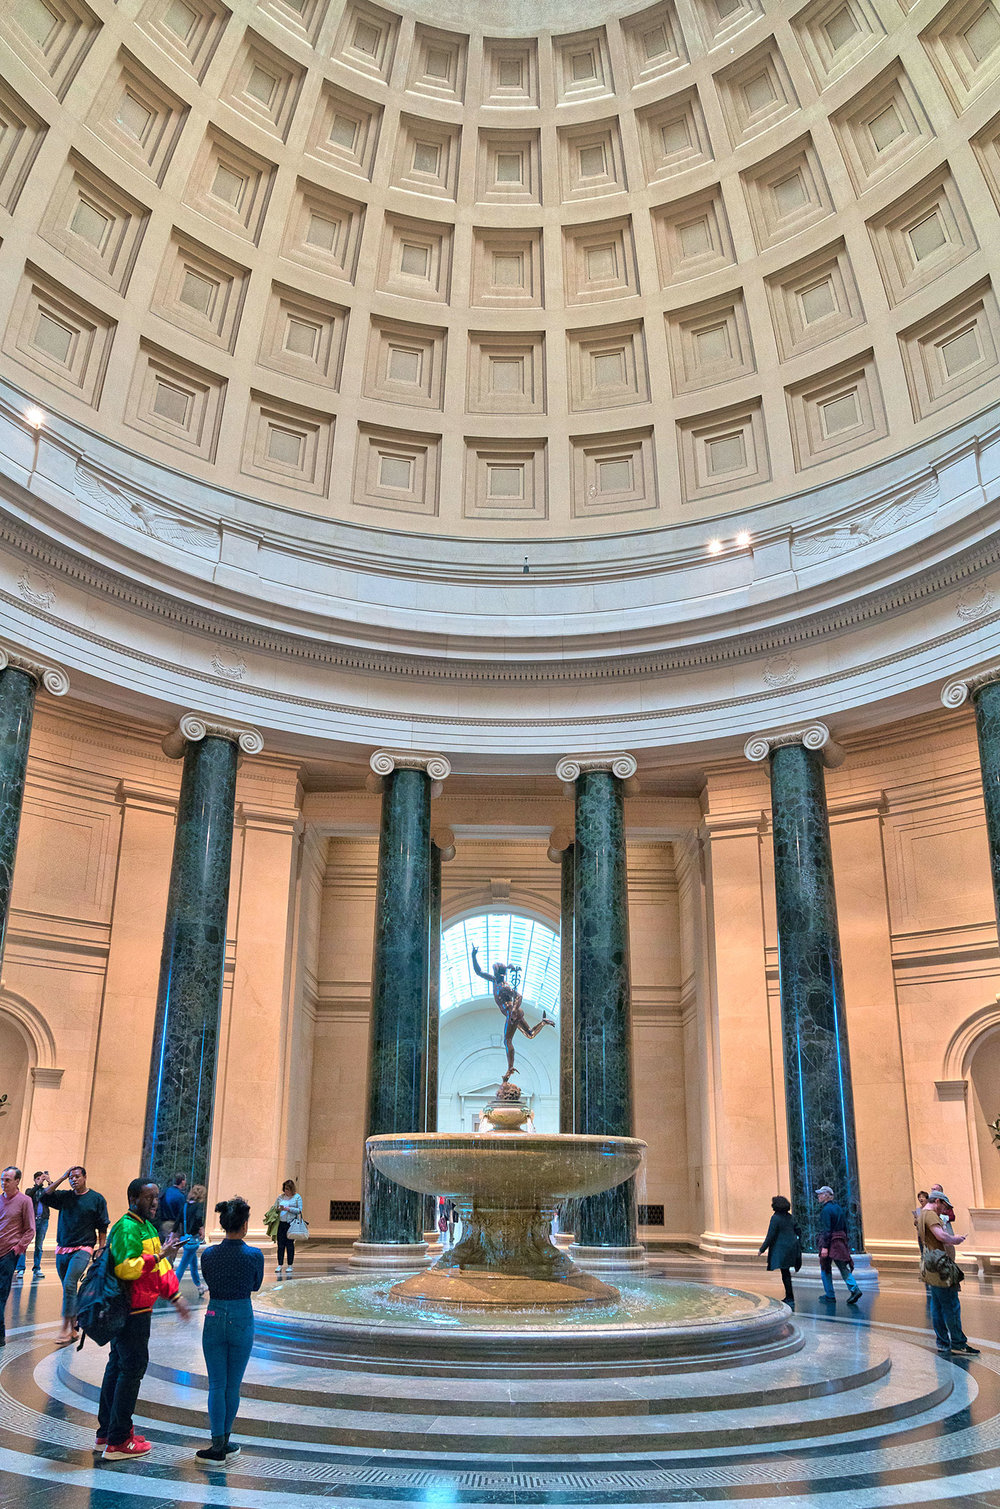 Rotunda in the West Building at the National Gallery of Art in Washington, DC.